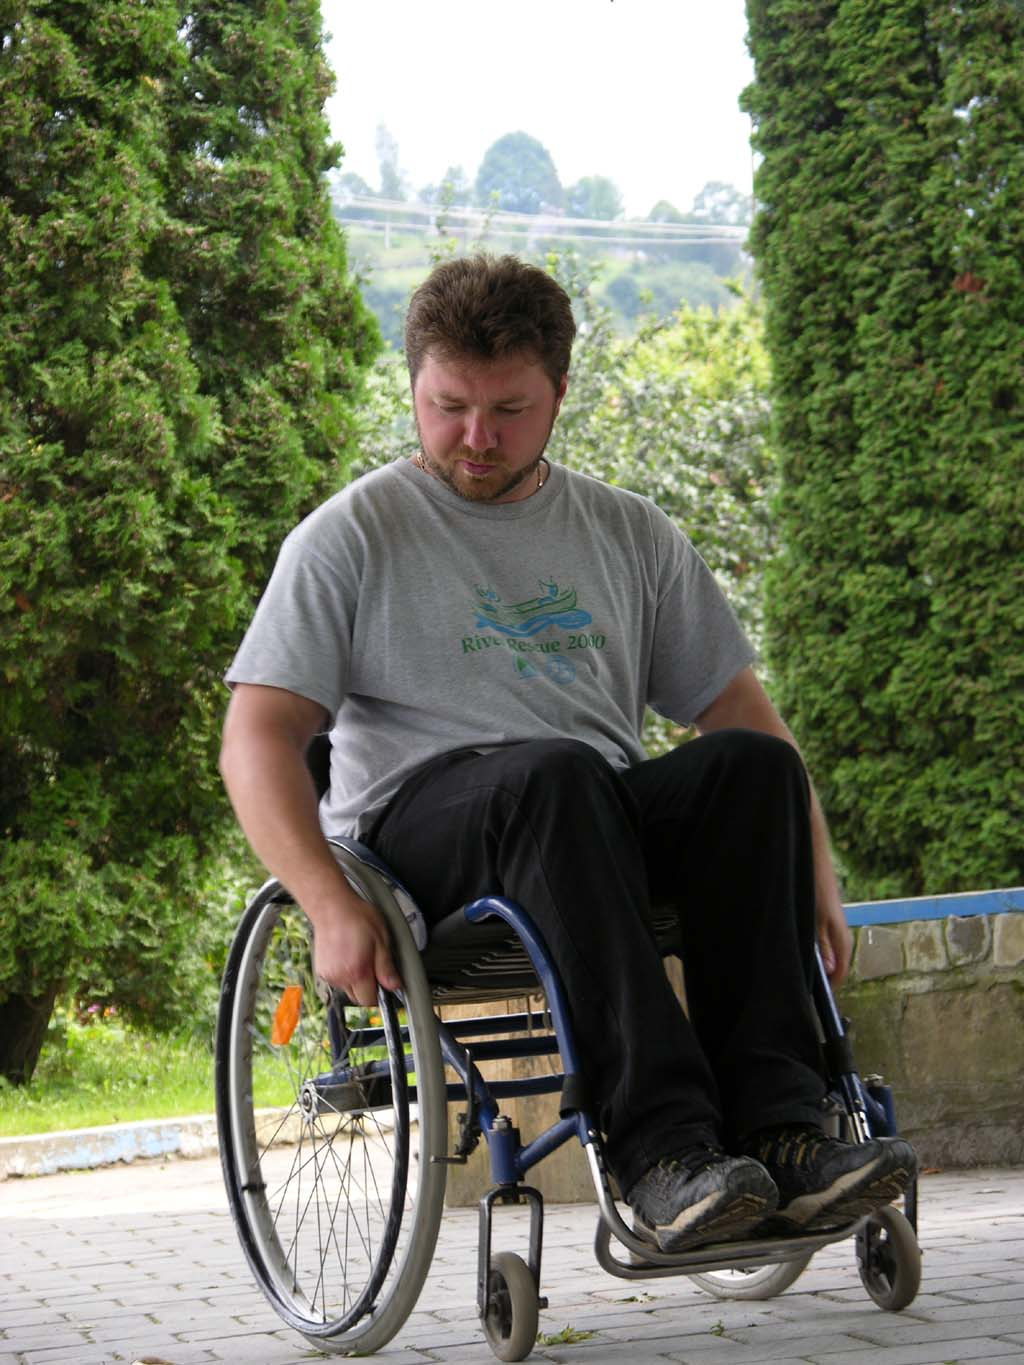 You are browsing images from the article: Upholding the rights of people with disabilities in recreational tourism of Ukraine